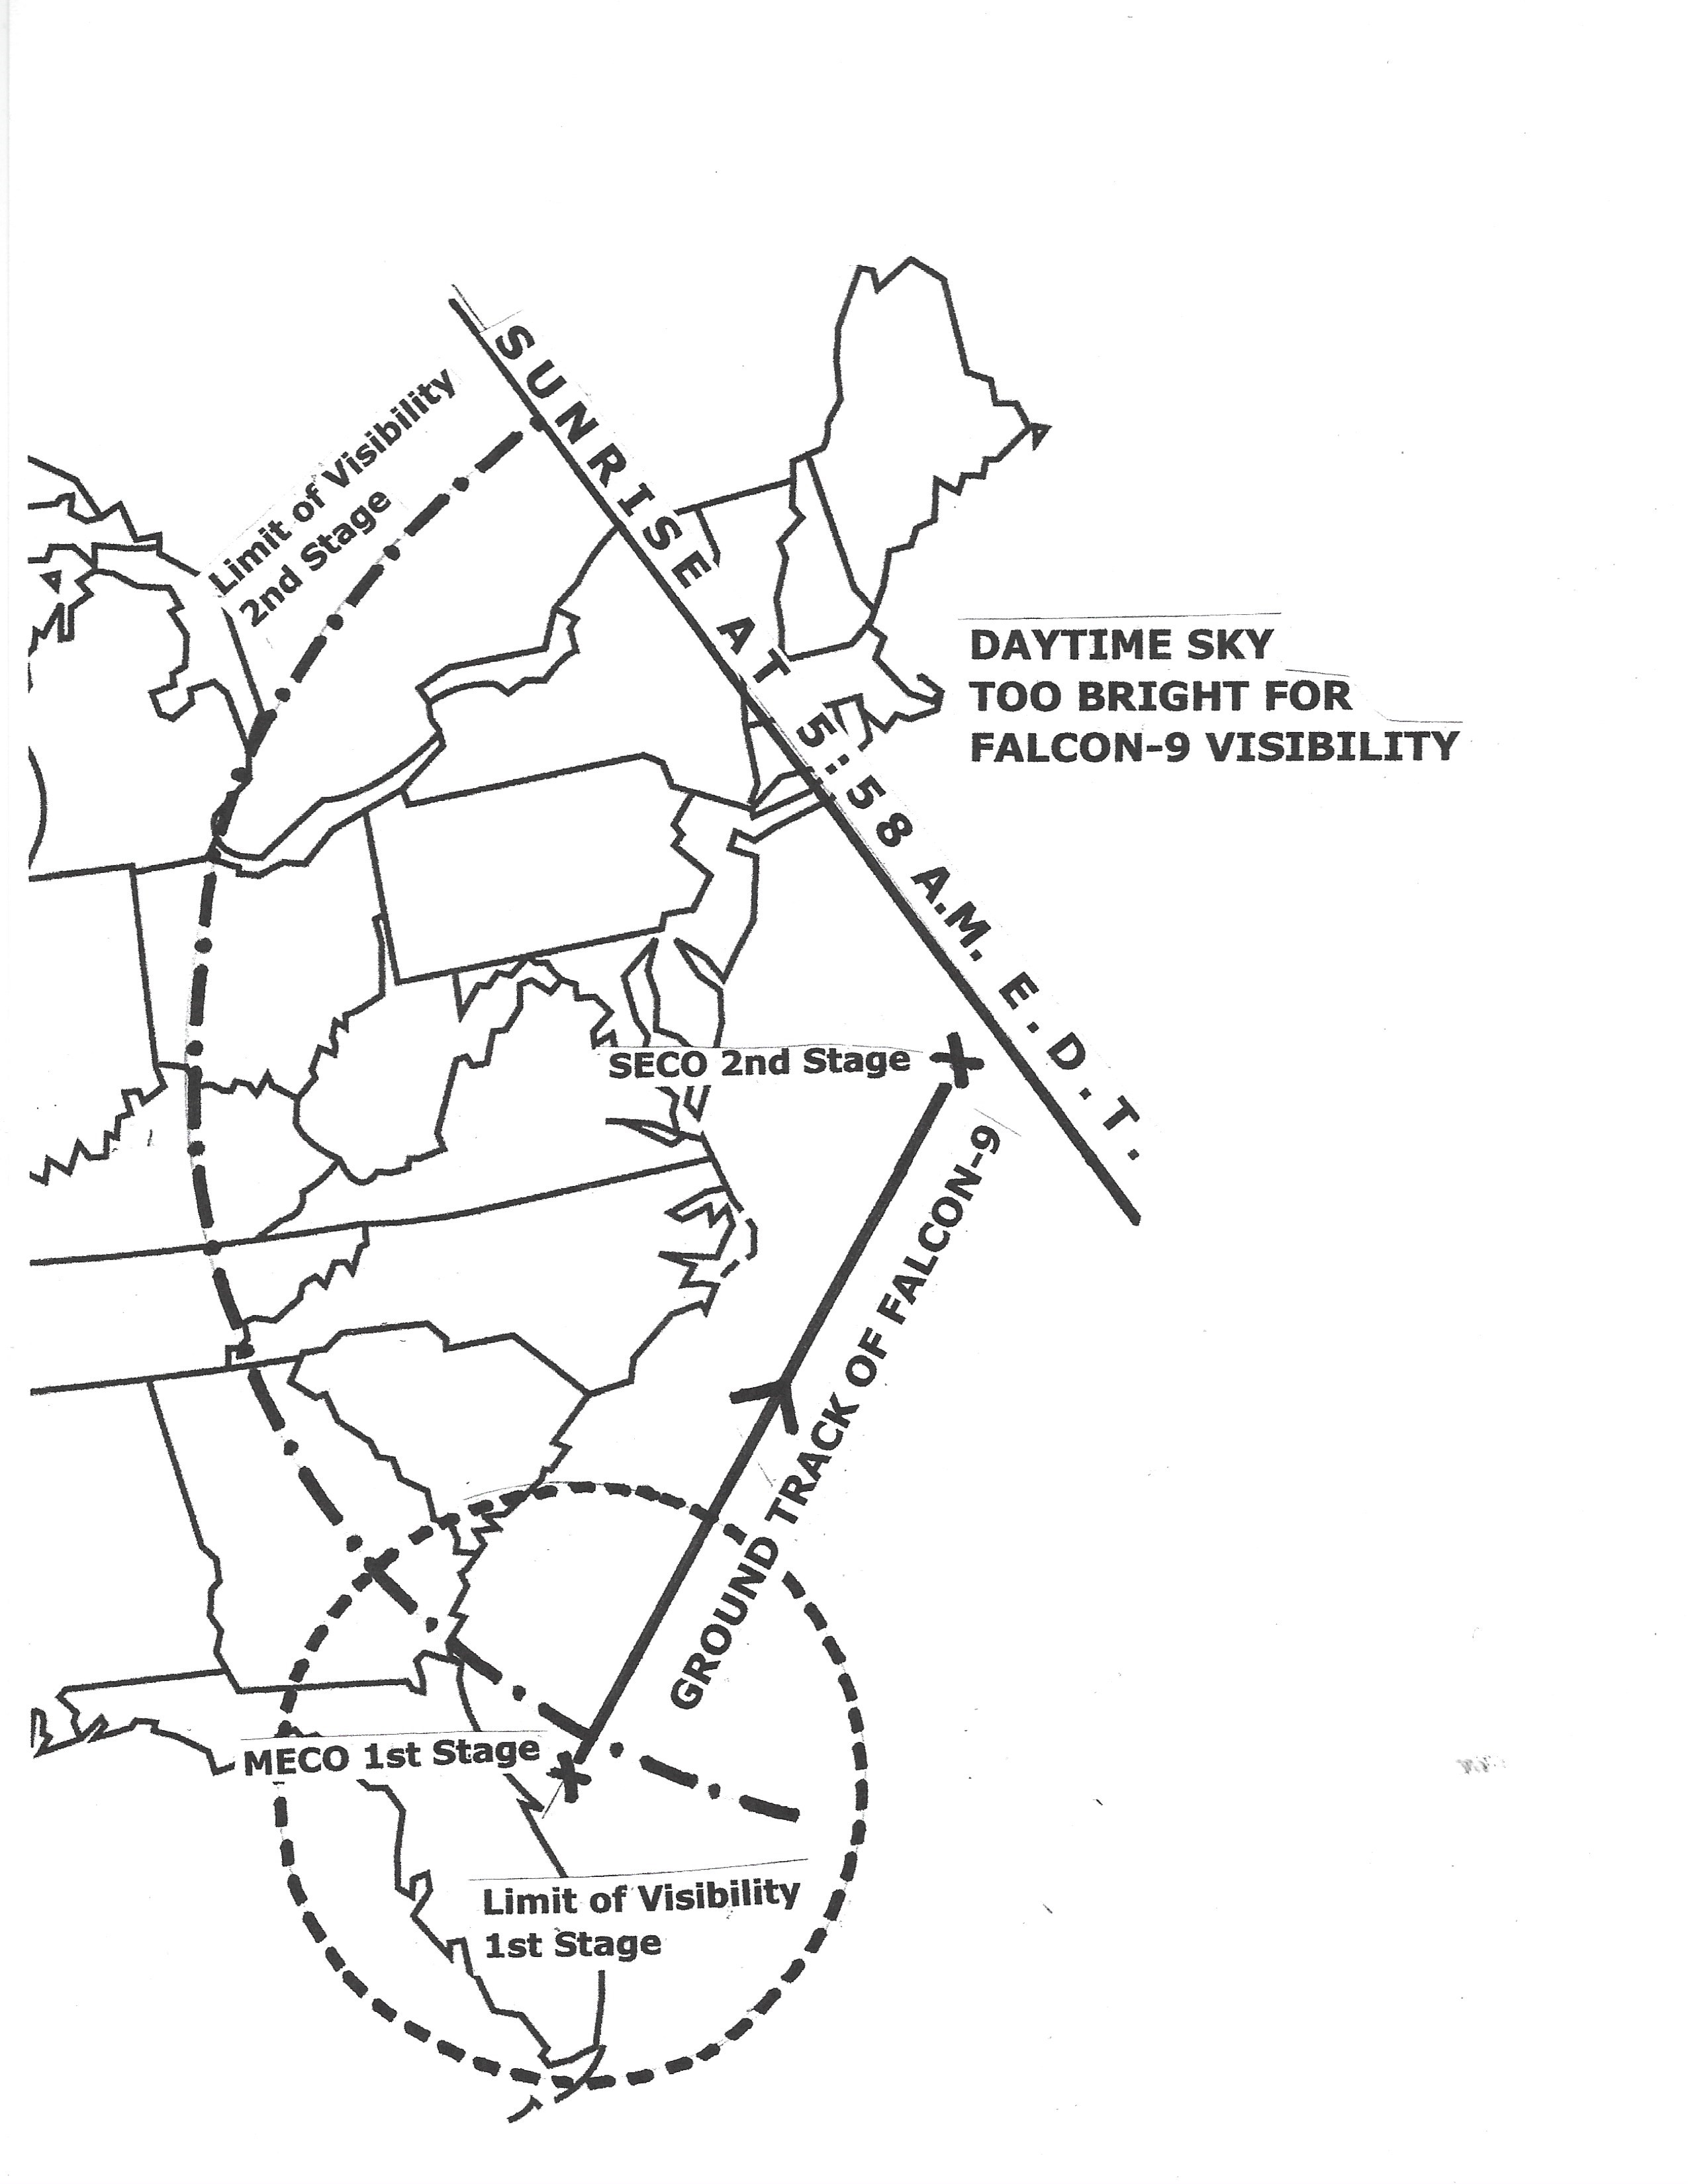 This sky map shows the U.S. East Coast visibility area for SpaceX's Falcon 9 rocket and Crew-2 astronaut launch on April 23, 2021.